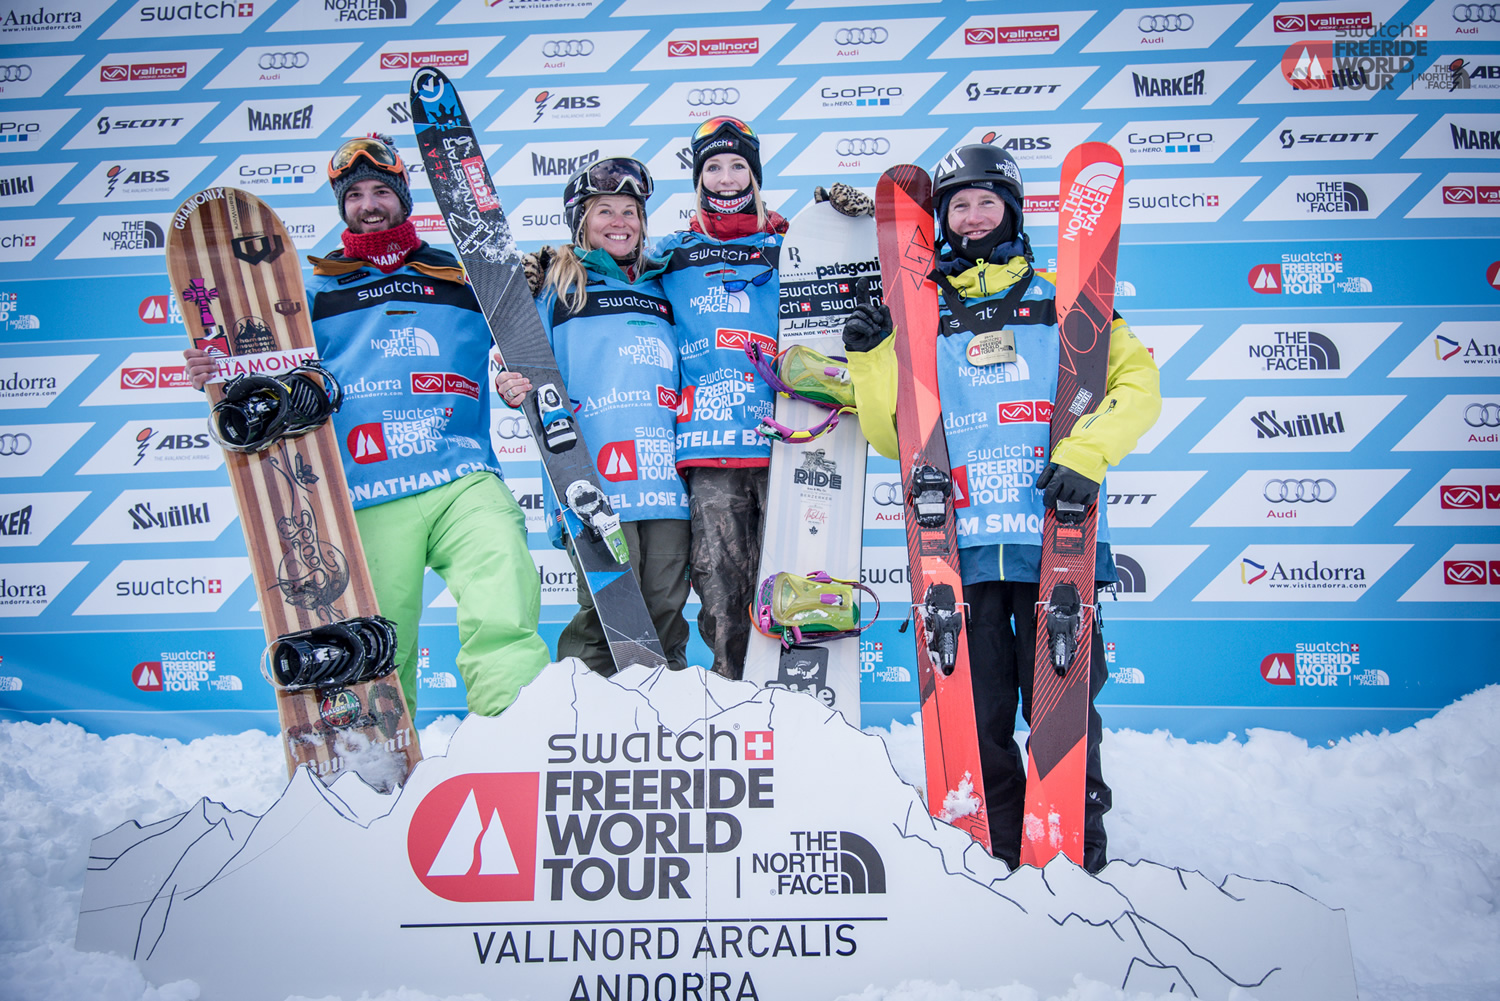 Swatch Freeride World Tour | Andorra